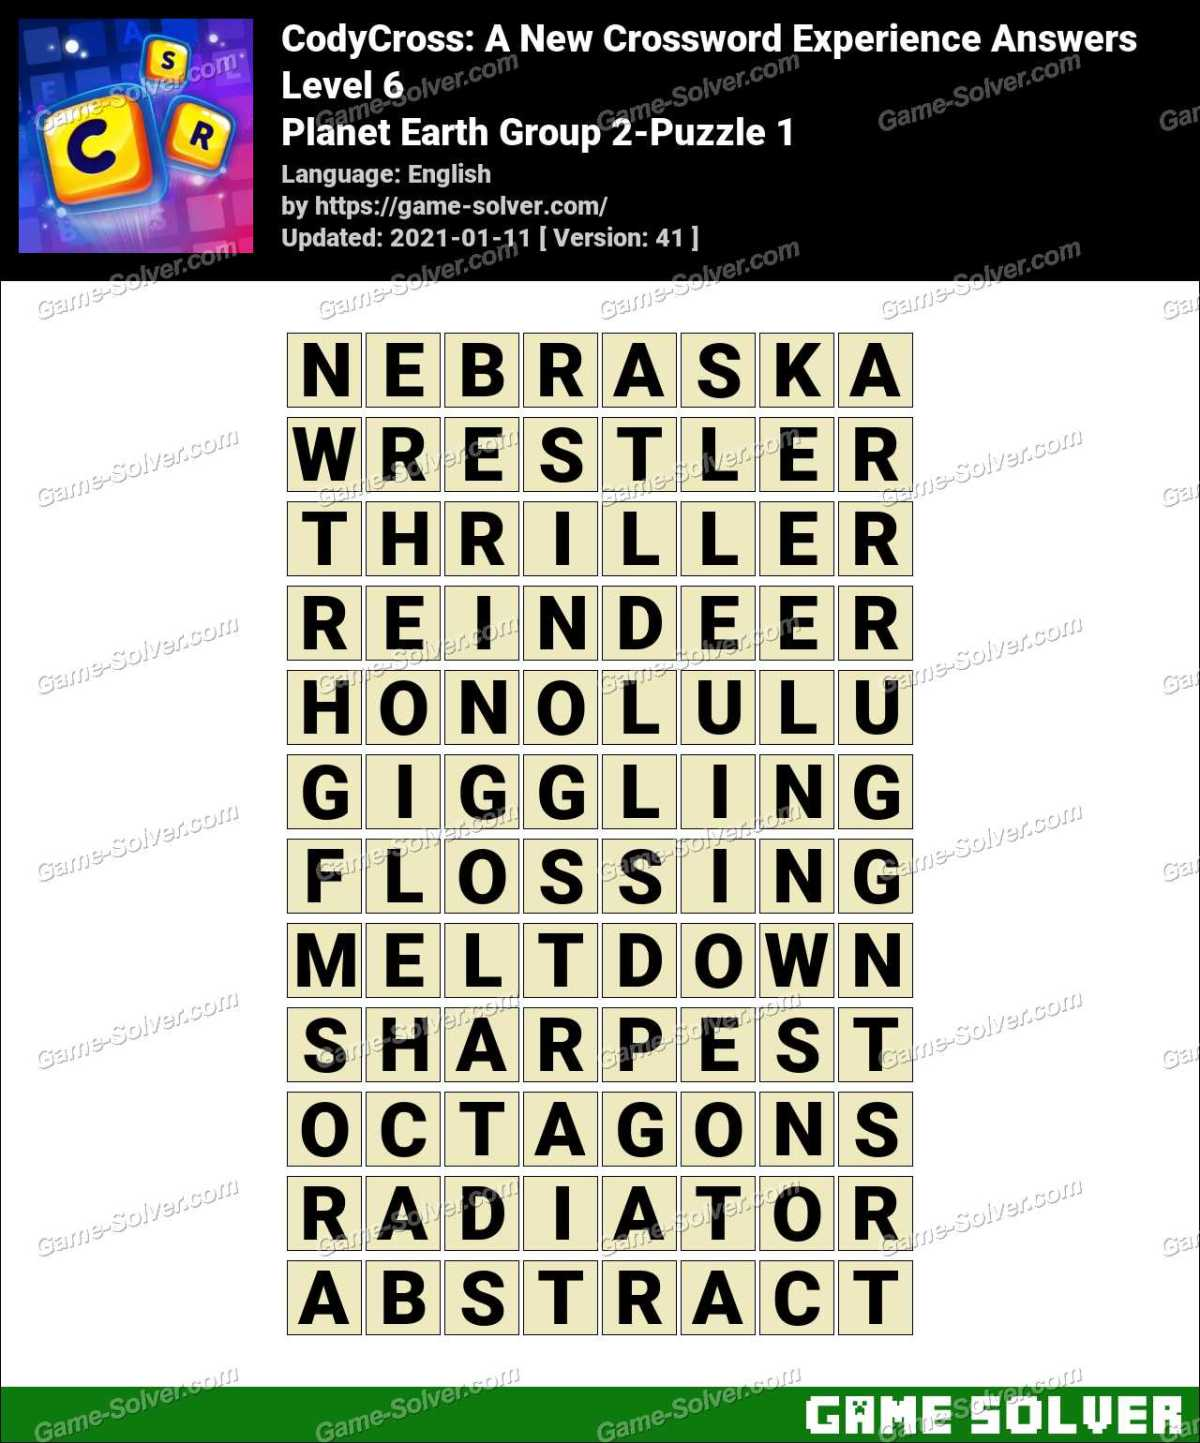 CodyCross Planet Earth Group 2-Puzzle 1 Answers